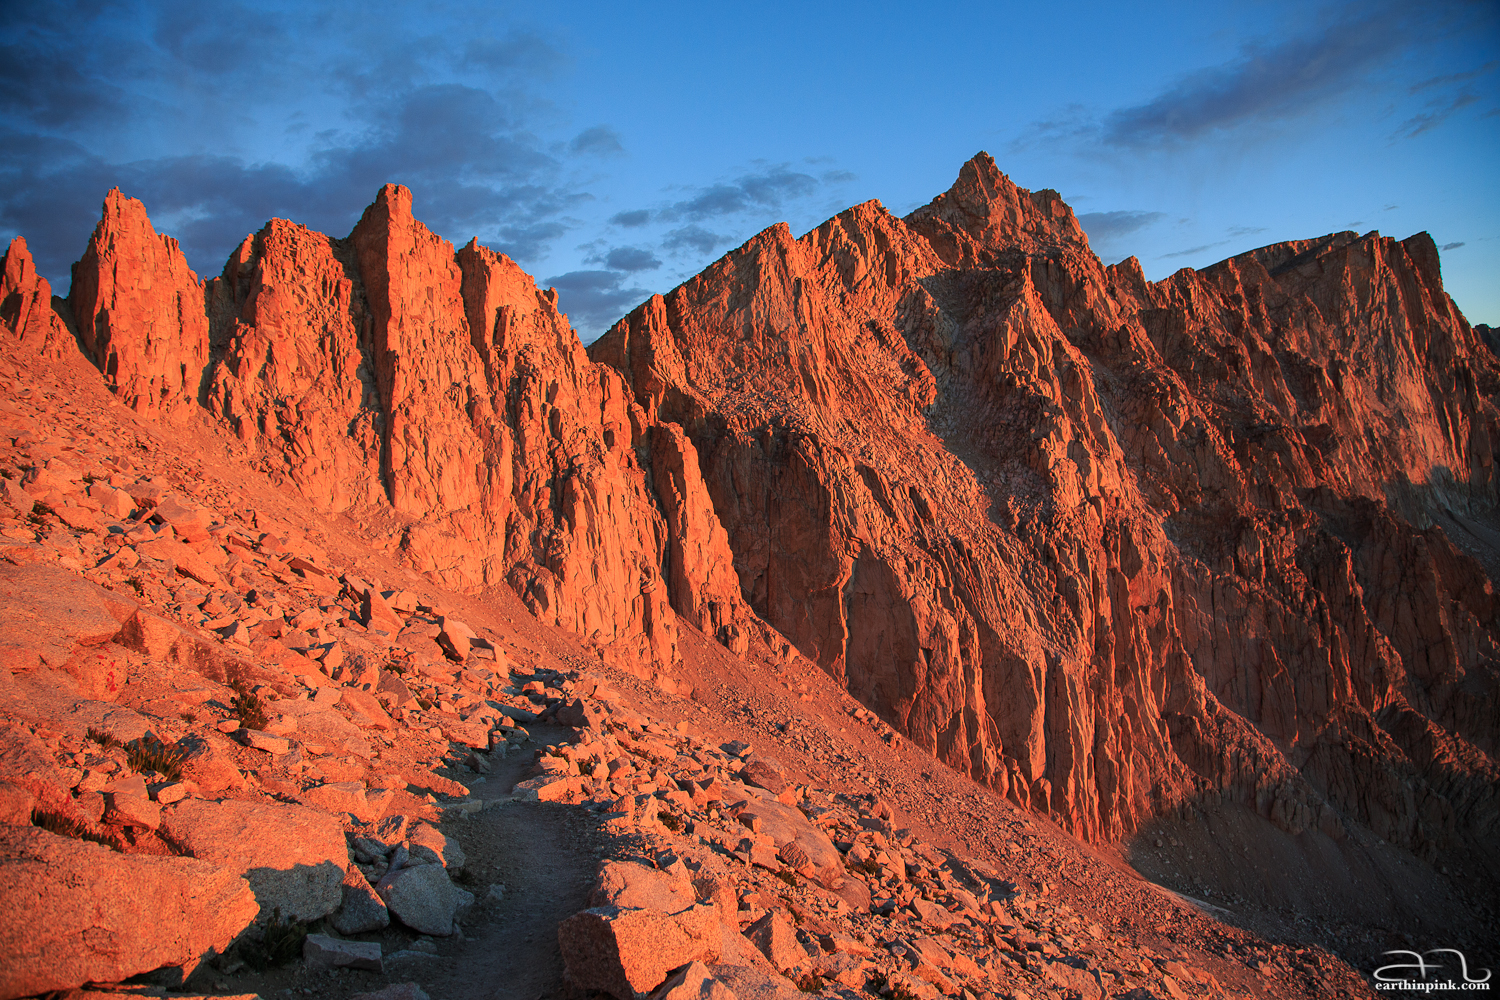 The sunrise illuminating the peak of Mt. Whitney (4418m), the highest point in the continental US